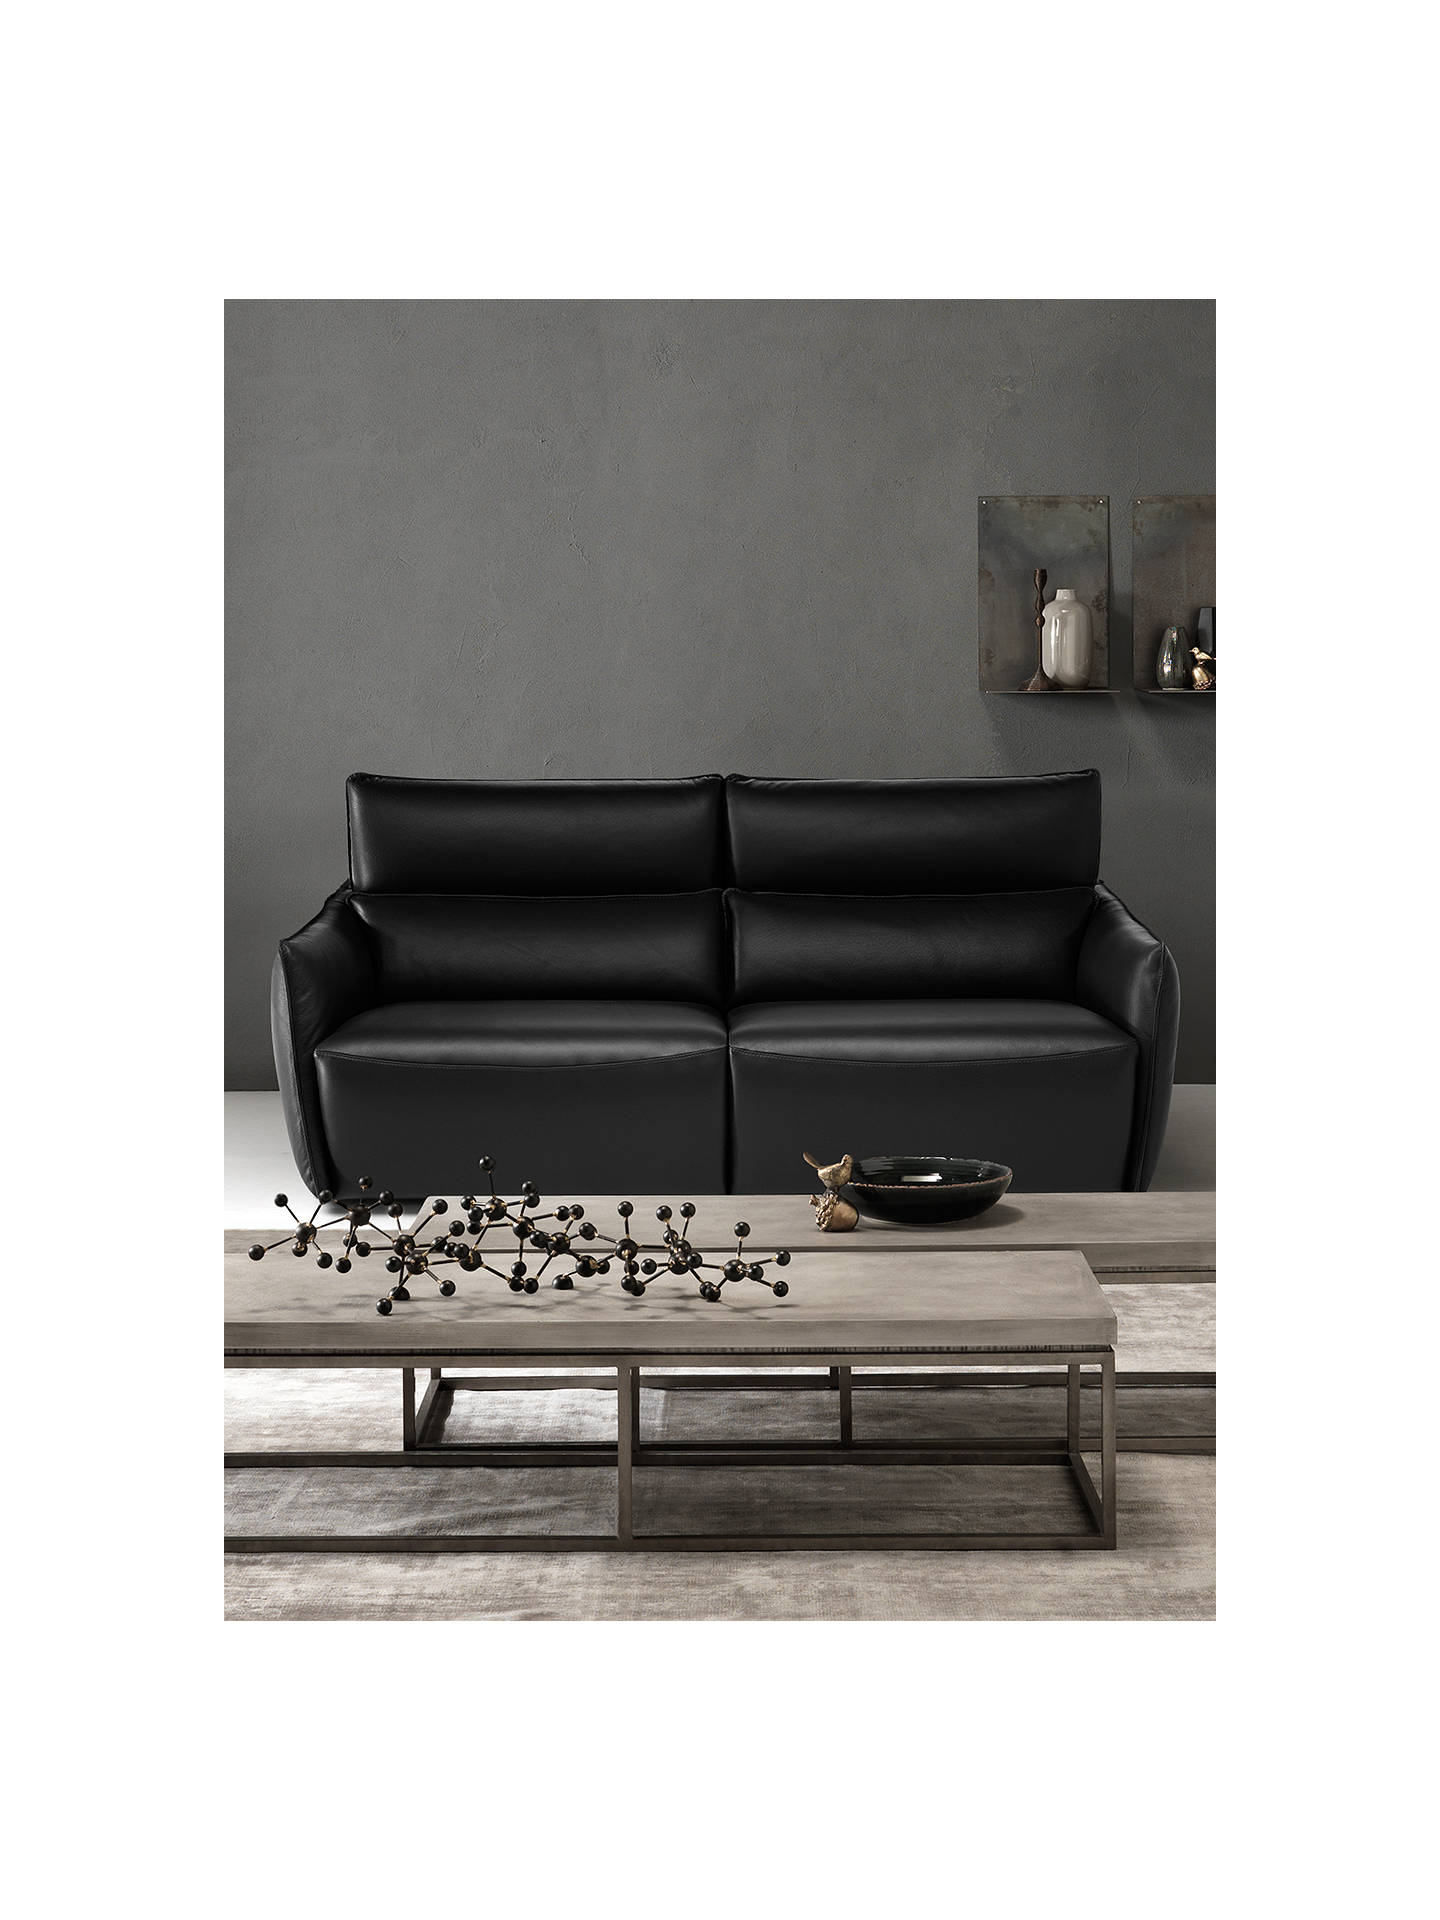 68f0a9a2e7b4 ... Buy Natuzzi Stupore 446 Leather Small 2 Seater Sofa with Power Motion,  Dream Black Online